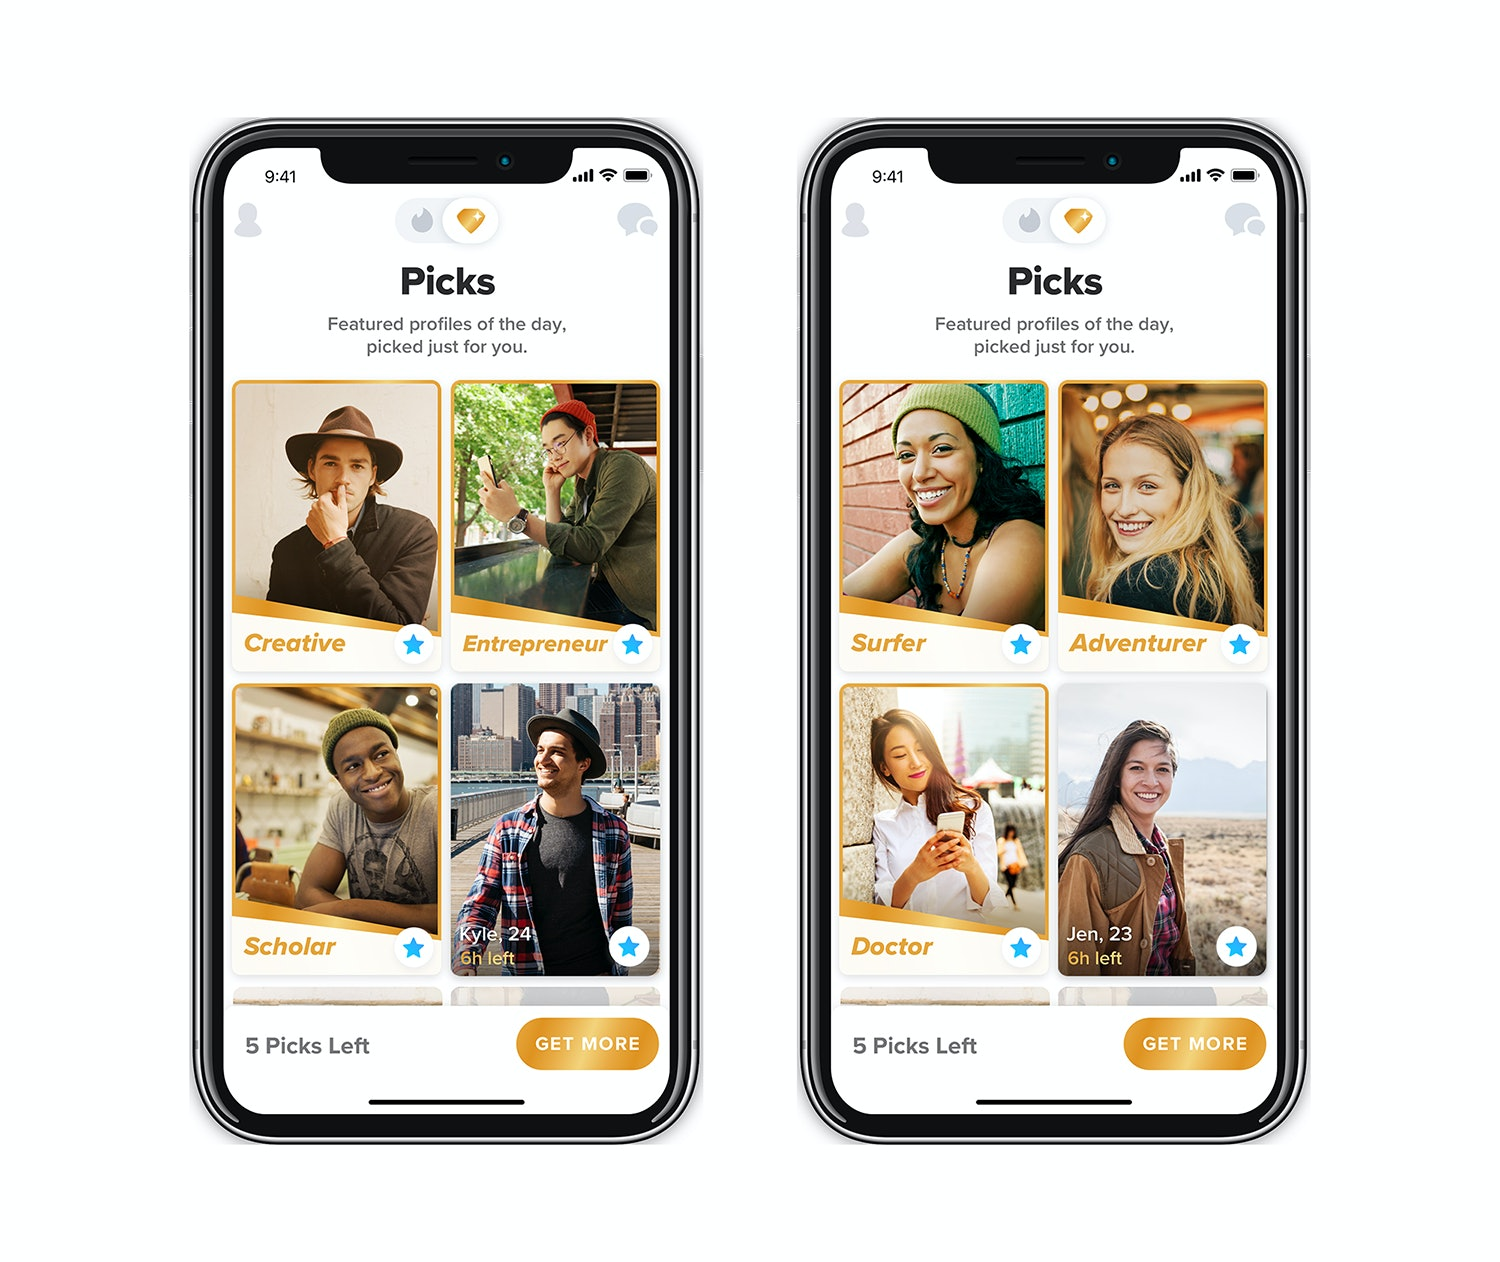 Tinder's Picks Feature Gives You Curated Matches, And Here's